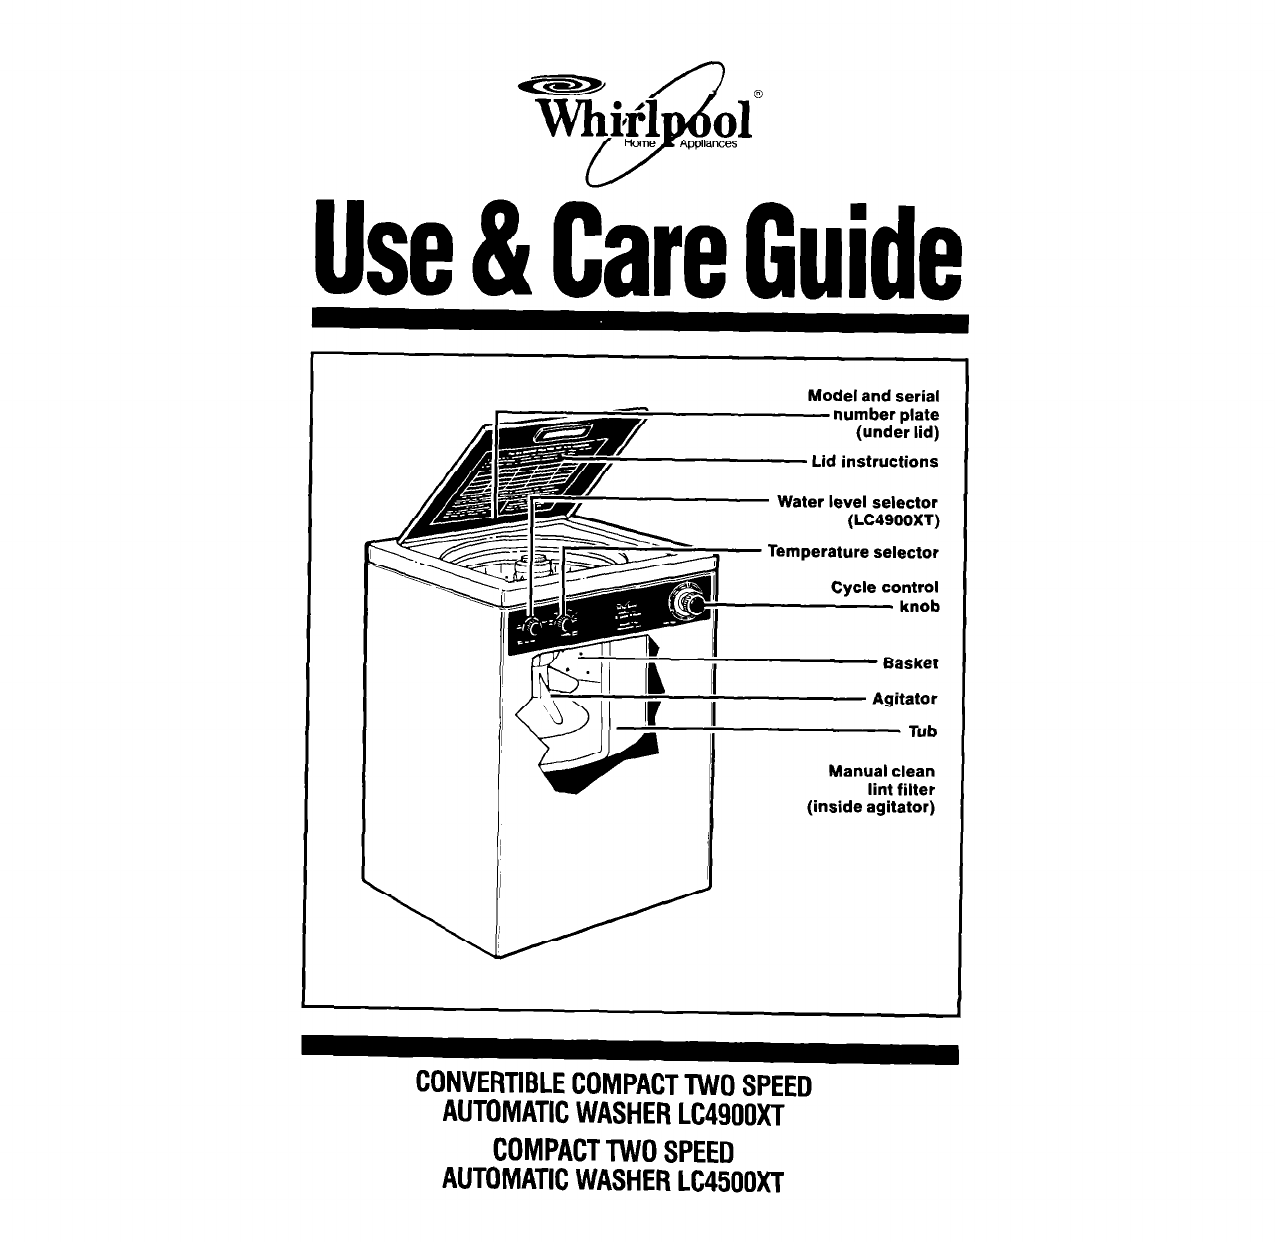 Whirlpool Washer Lc Xt User Guide